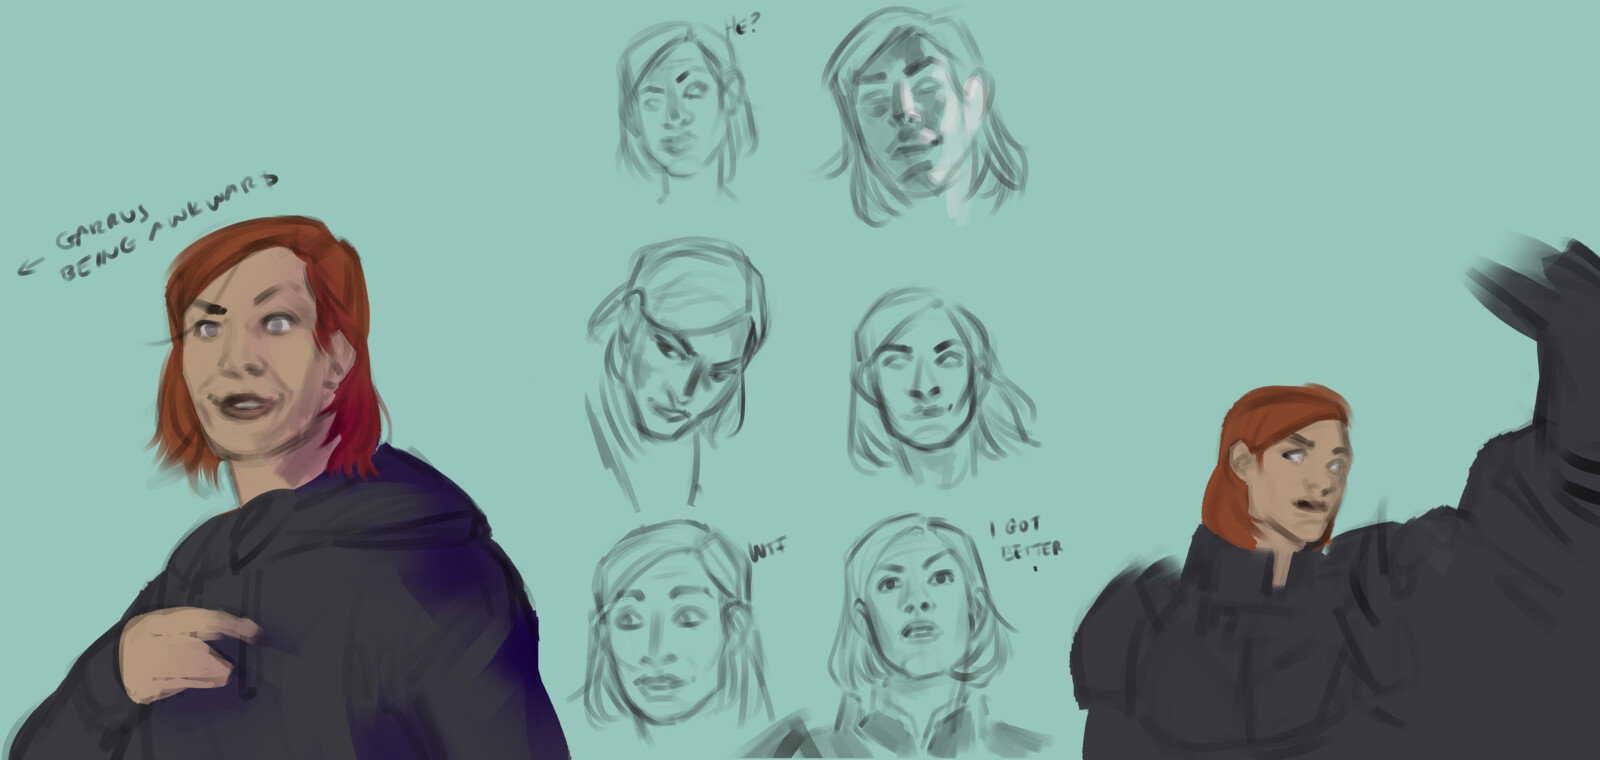 Sketches based on screenshots